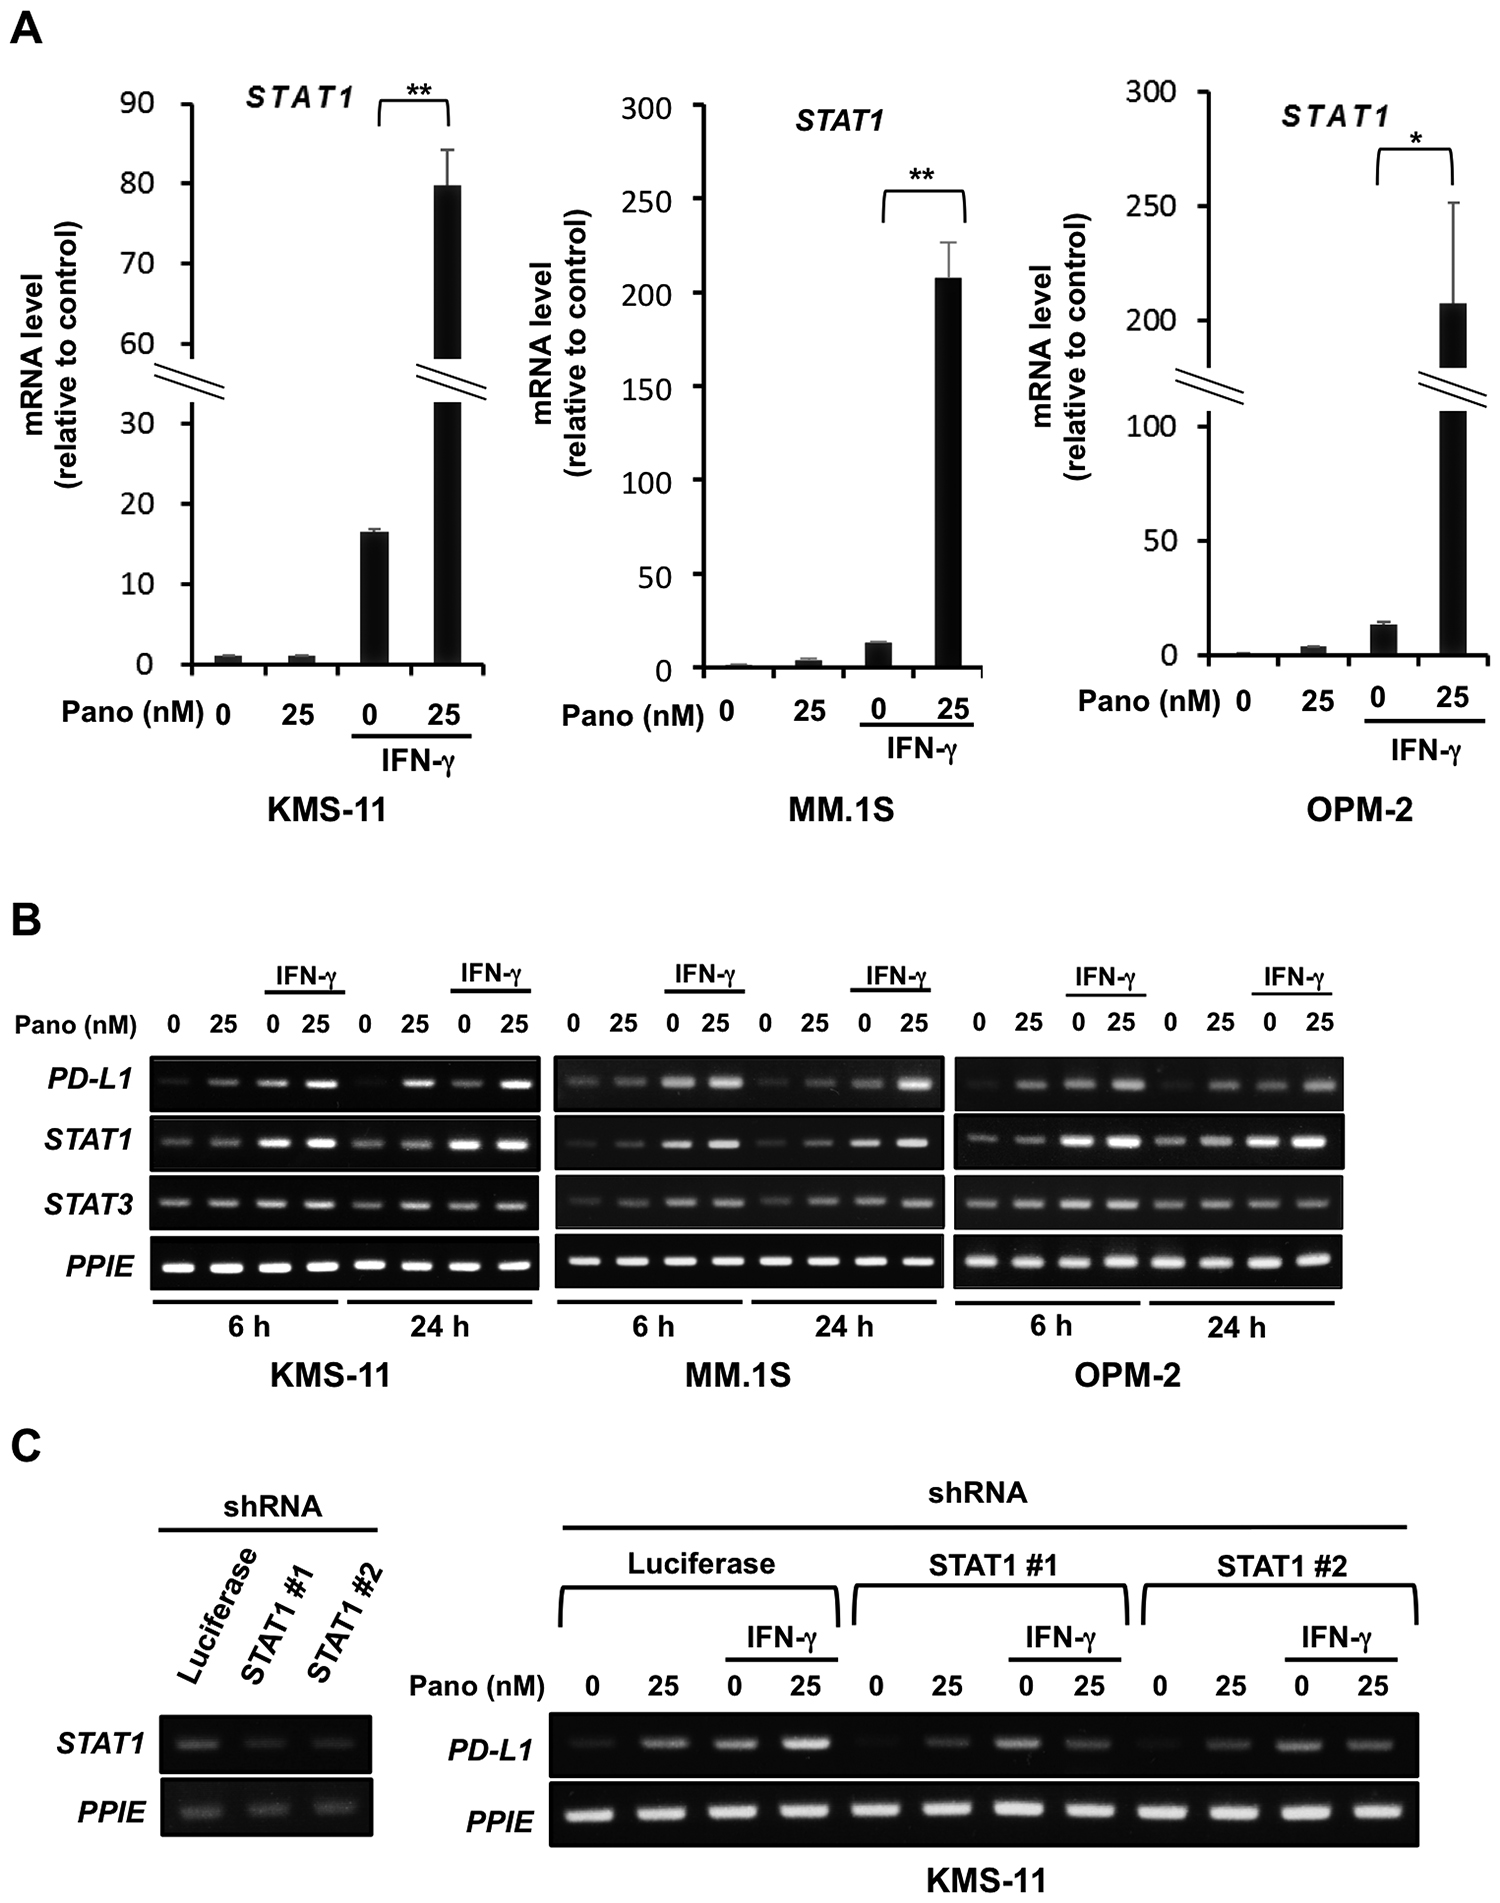 STAT1 upregulation in MM cells by panobinostat in the presence of IFN-γ.